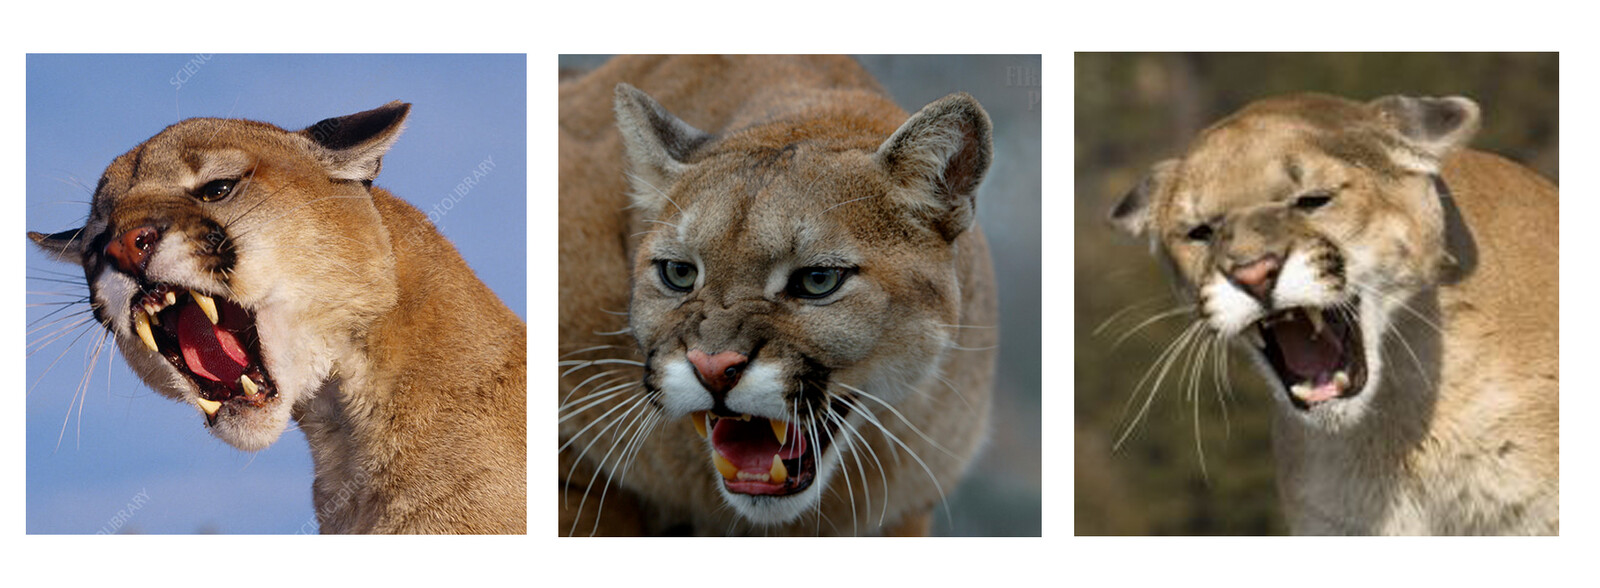 Cougar photo reference